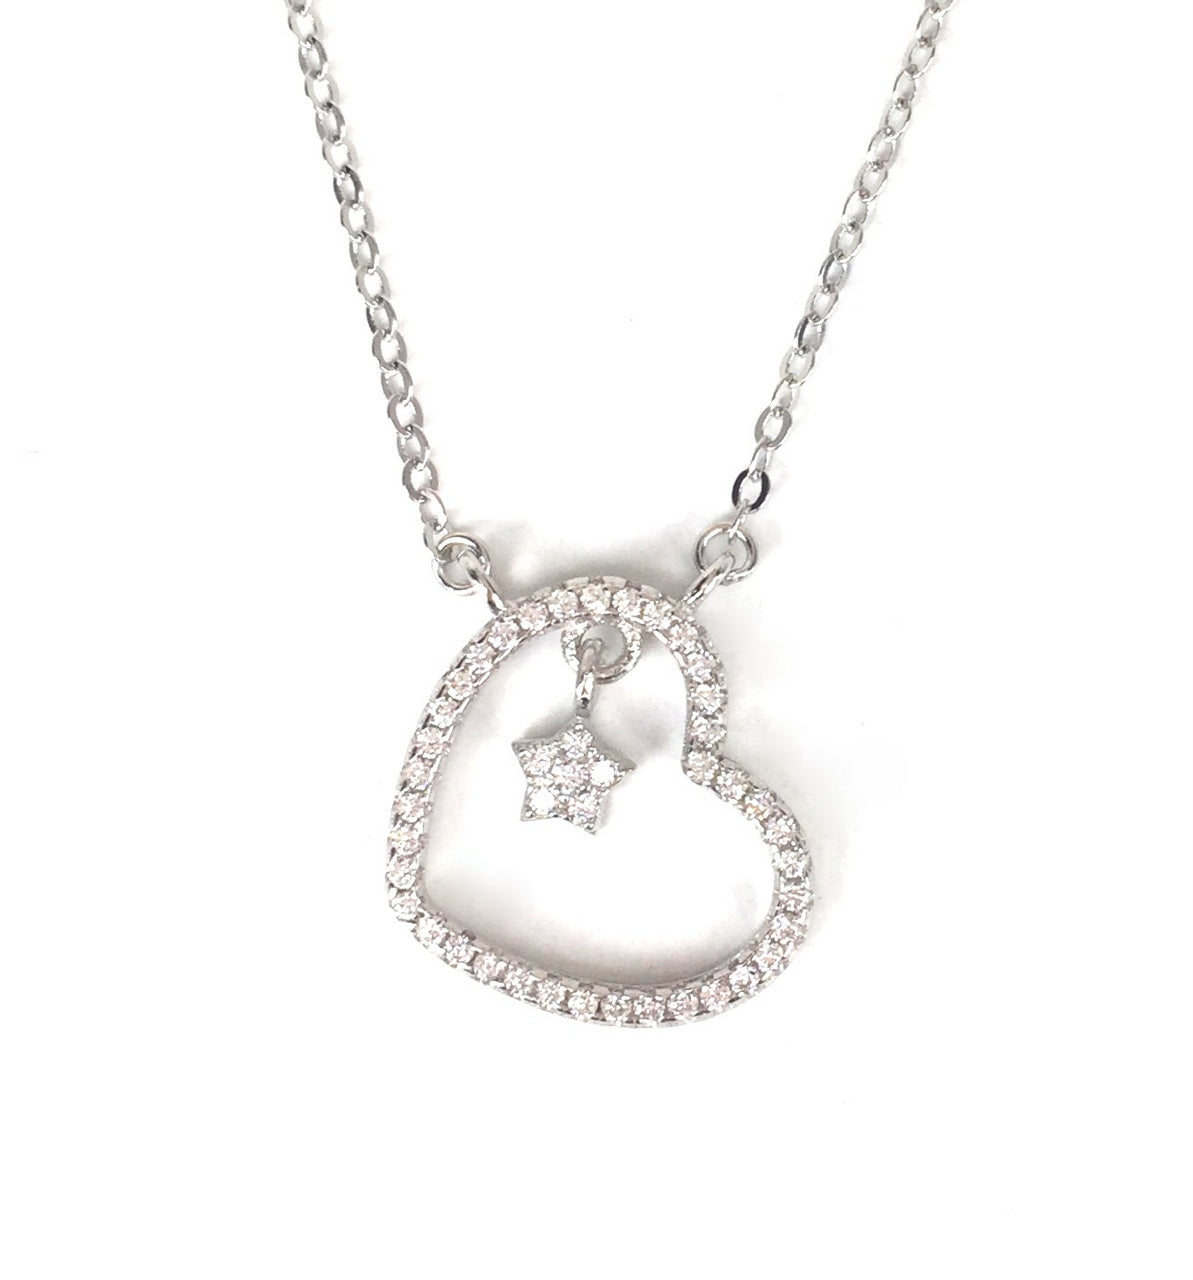 STAR IN HEART PAVE CZ STERLING SILVER NECKLACE